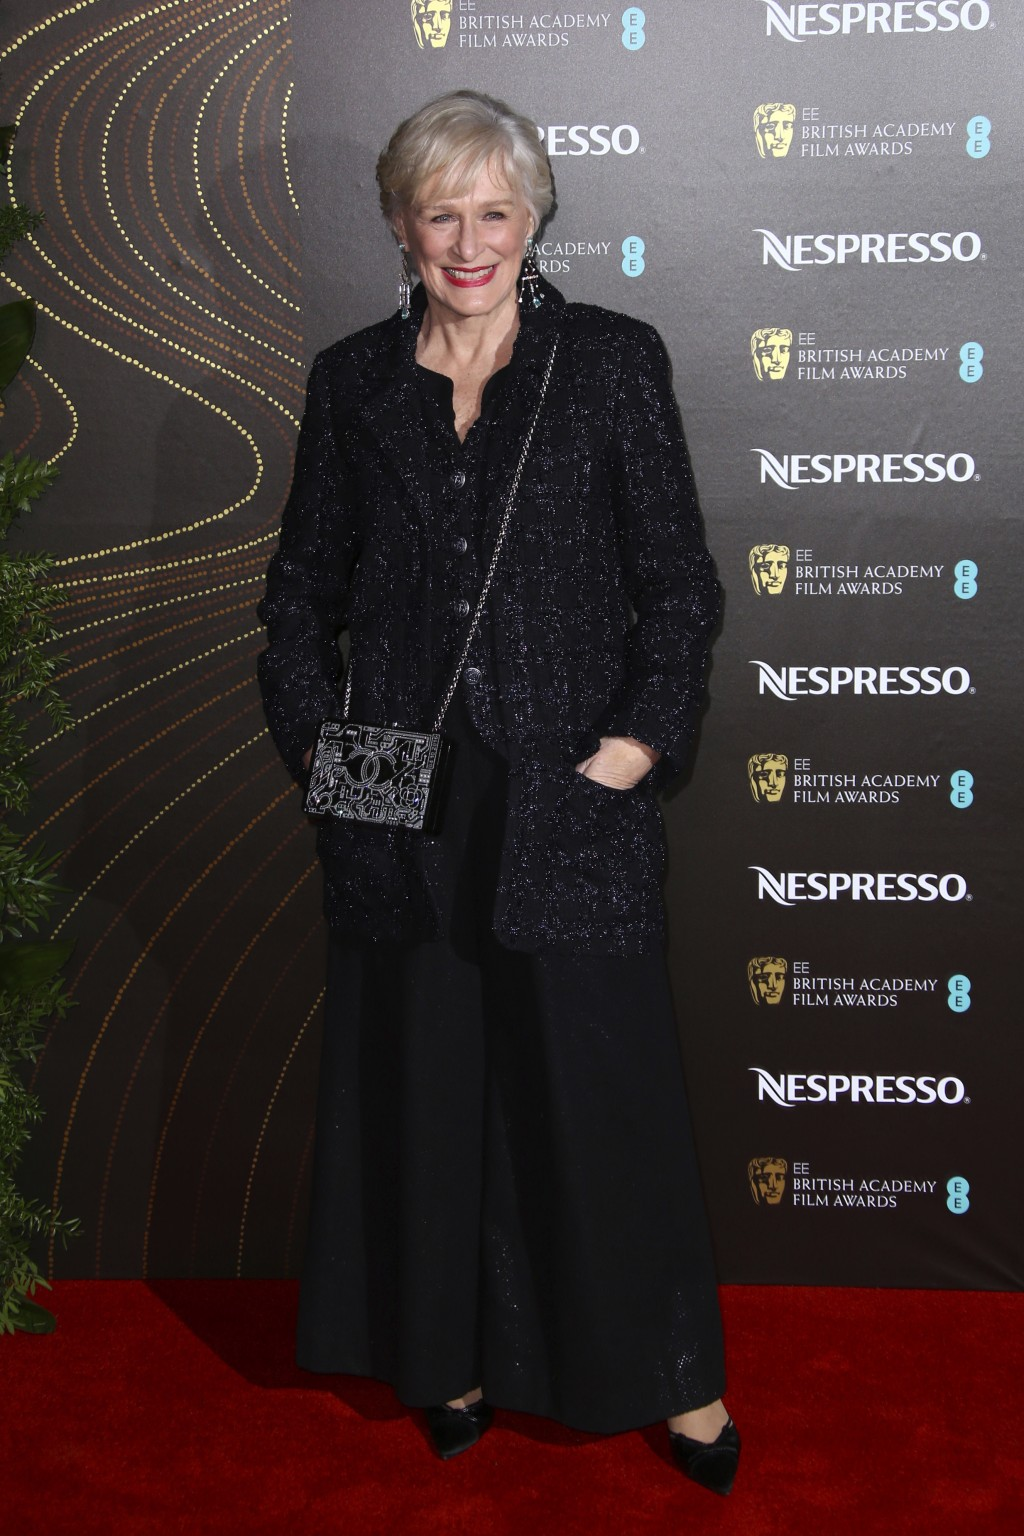 Actress Glenn Close poses for photographers upon arrival at the BAFTA Nominees Party in London, Saturday, Feb. 9, 2019. (Photo by Joel C Ryan/Invision